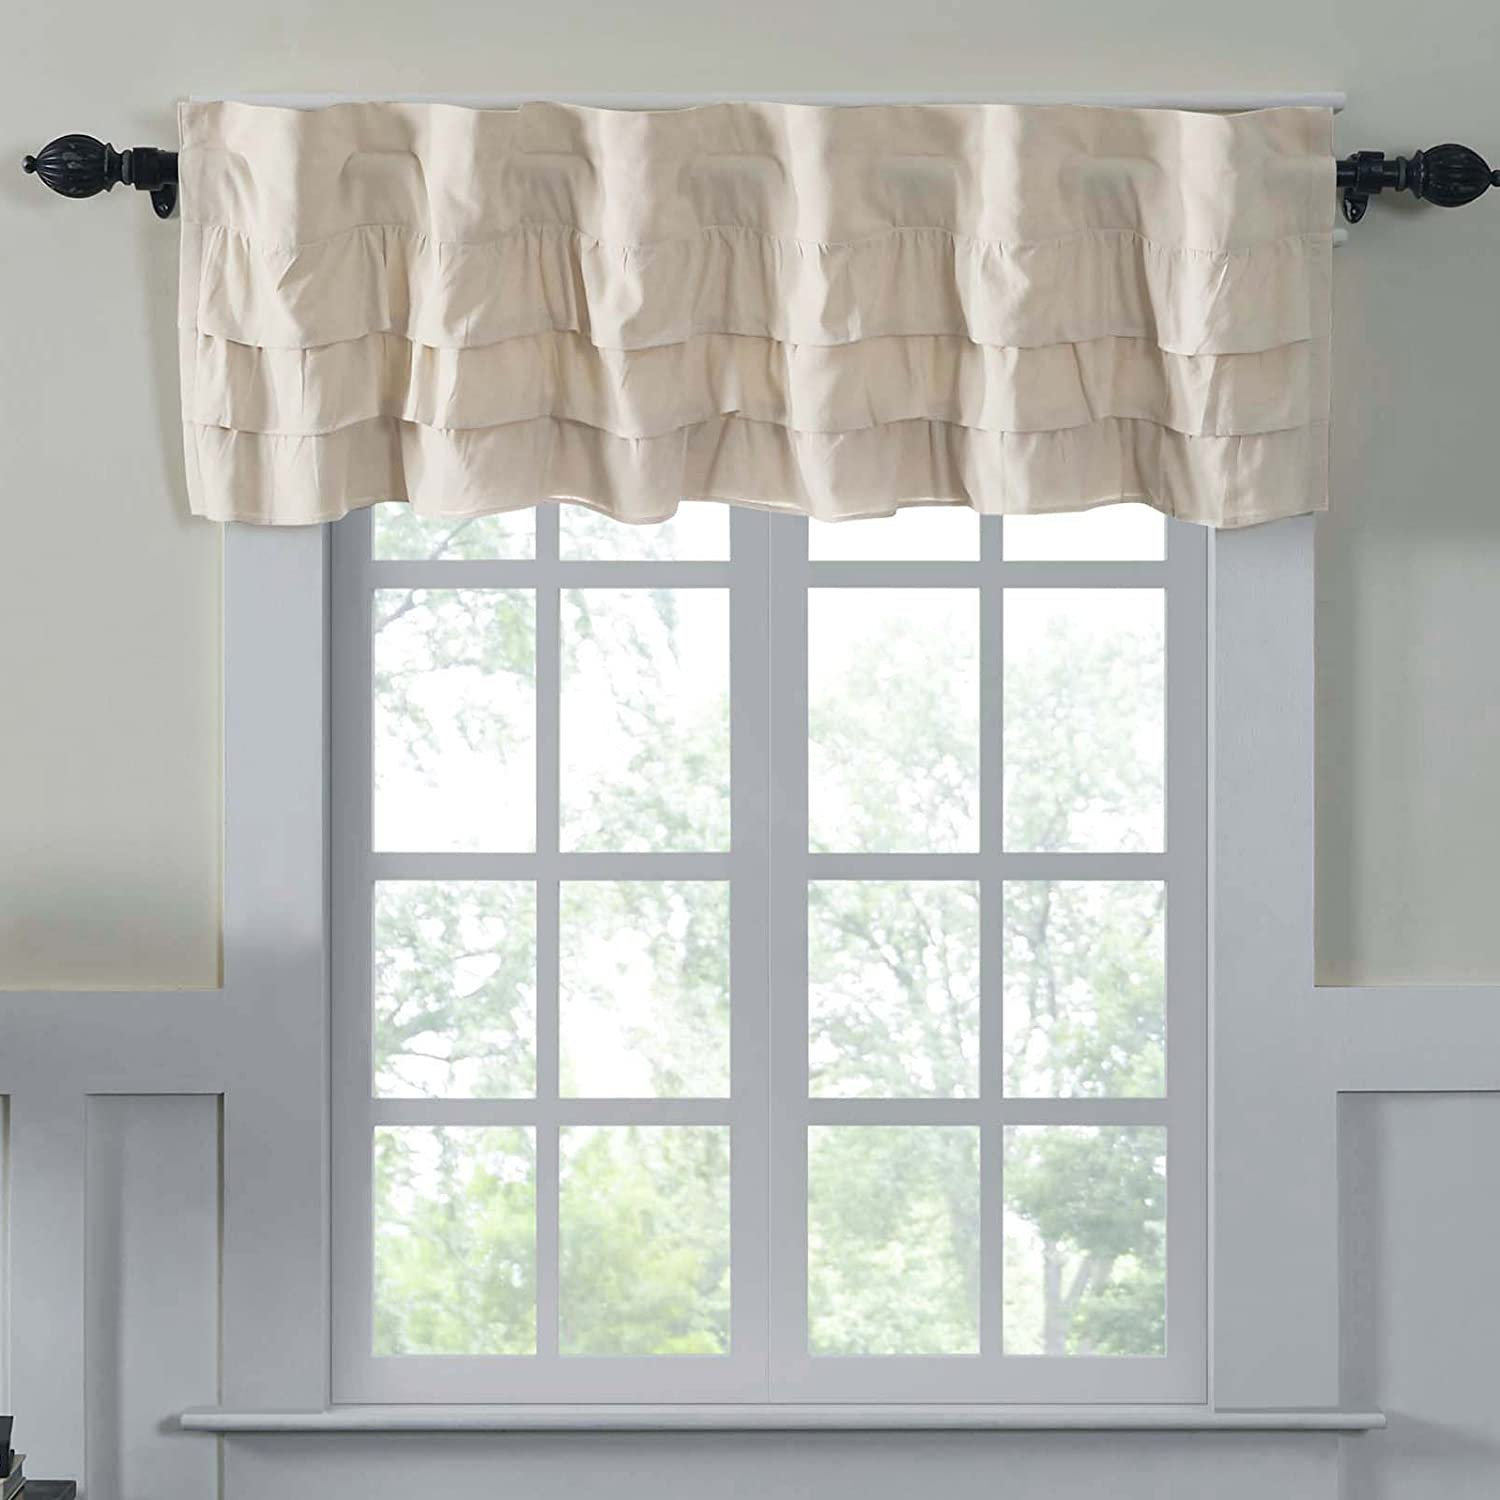 Ruffled Chambray Natural Lined Valance, Farmhouse Decor Curtain.